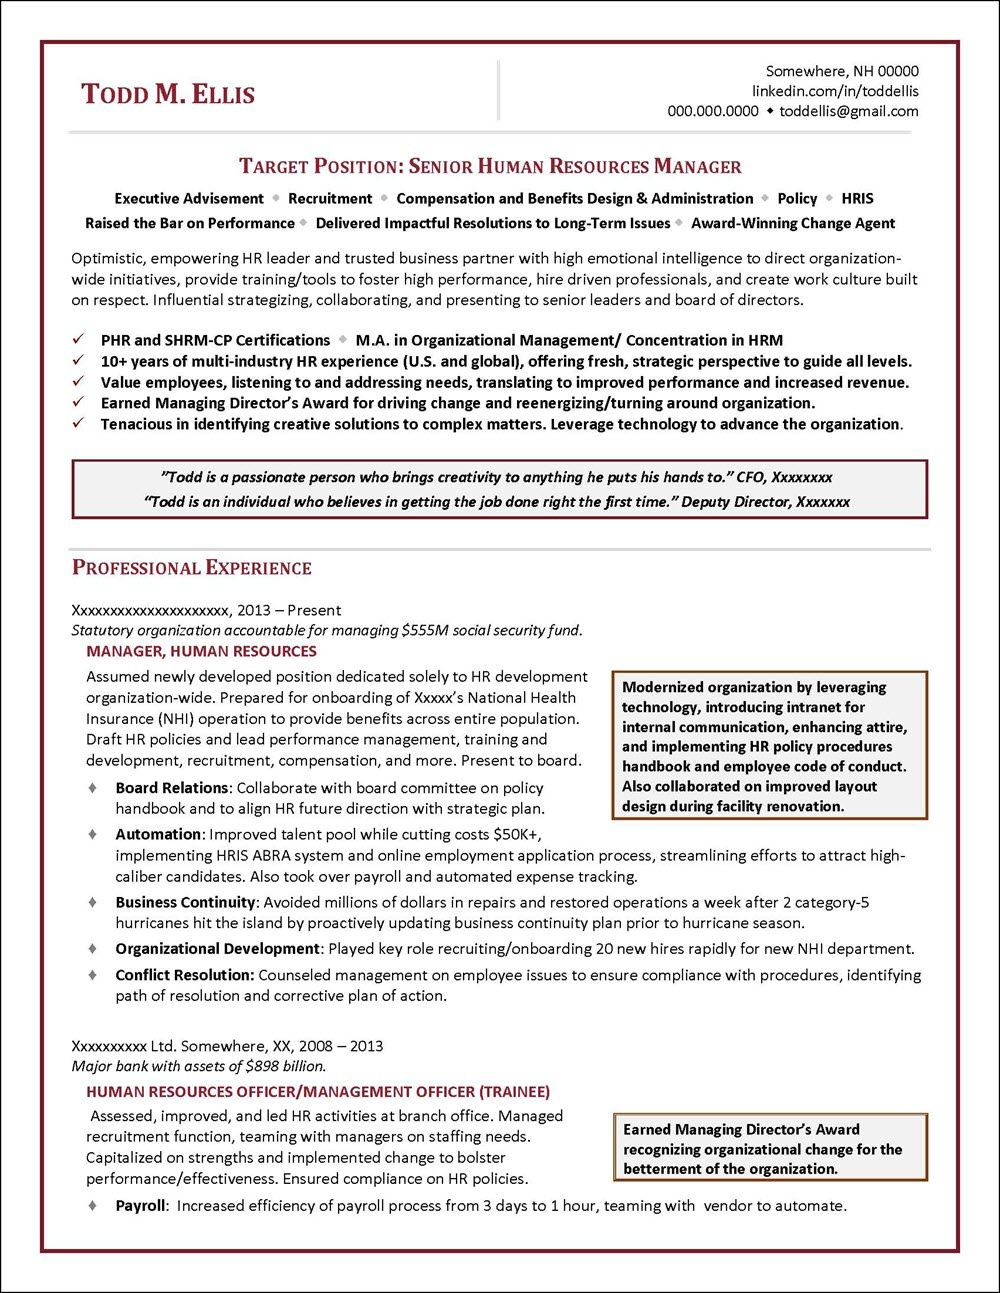 human resources manager resume resources, accountant cv format simple professional template word accounting objective entry level